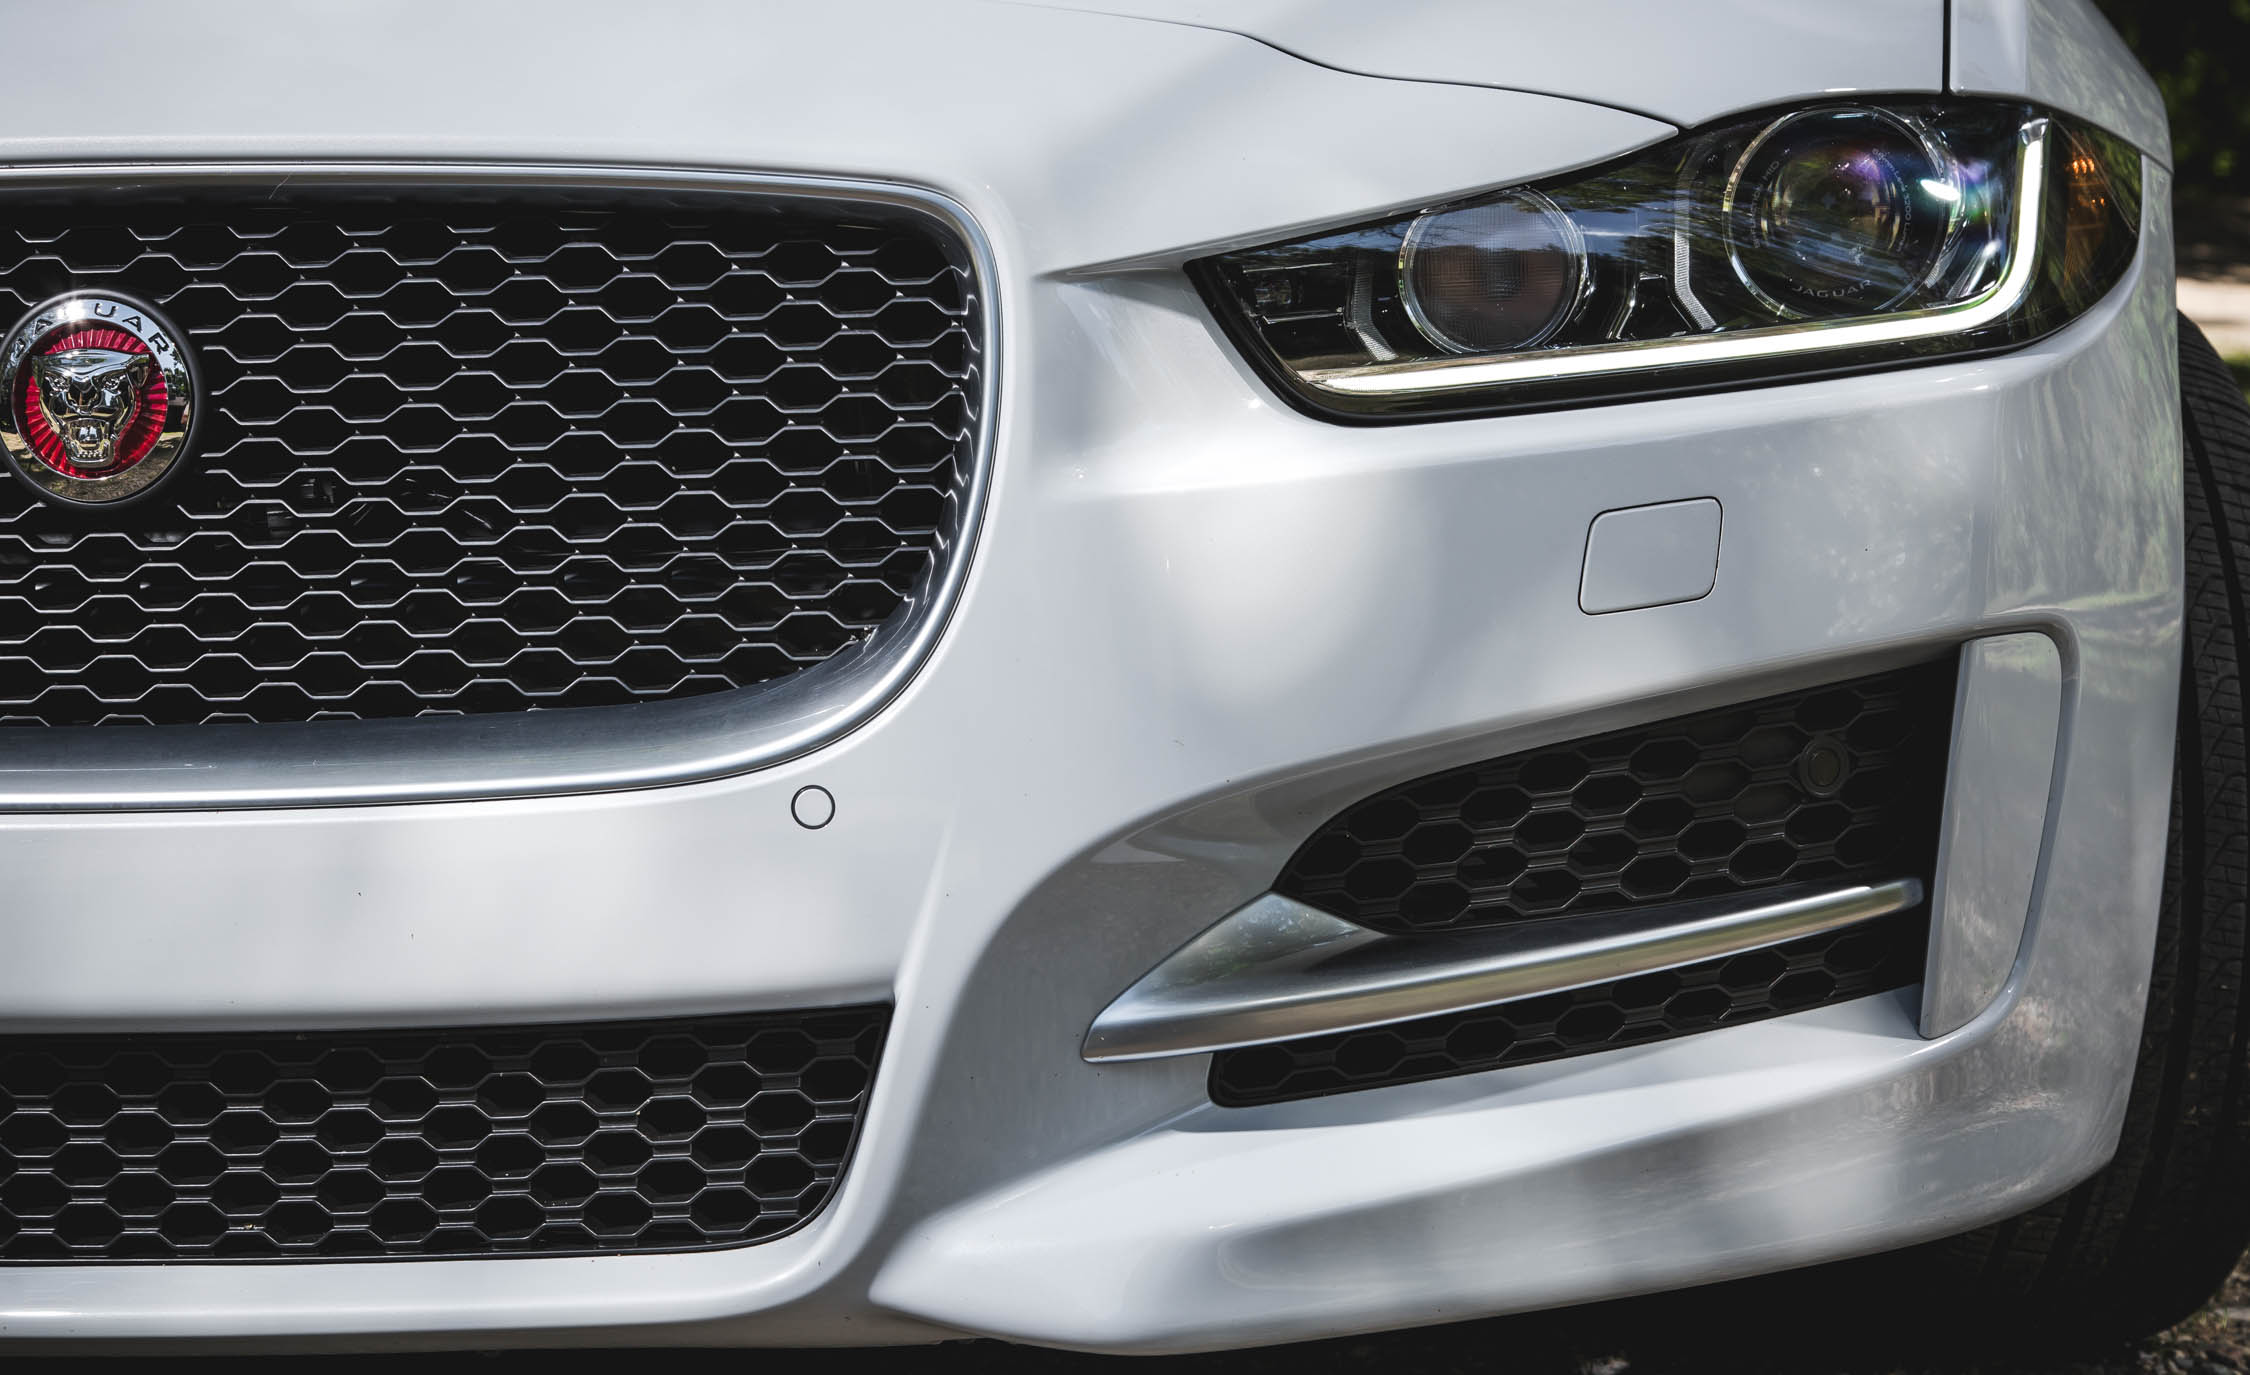 2017 Jaguar Xe White Exterior View Headlight And Grille (View 6 of 32)